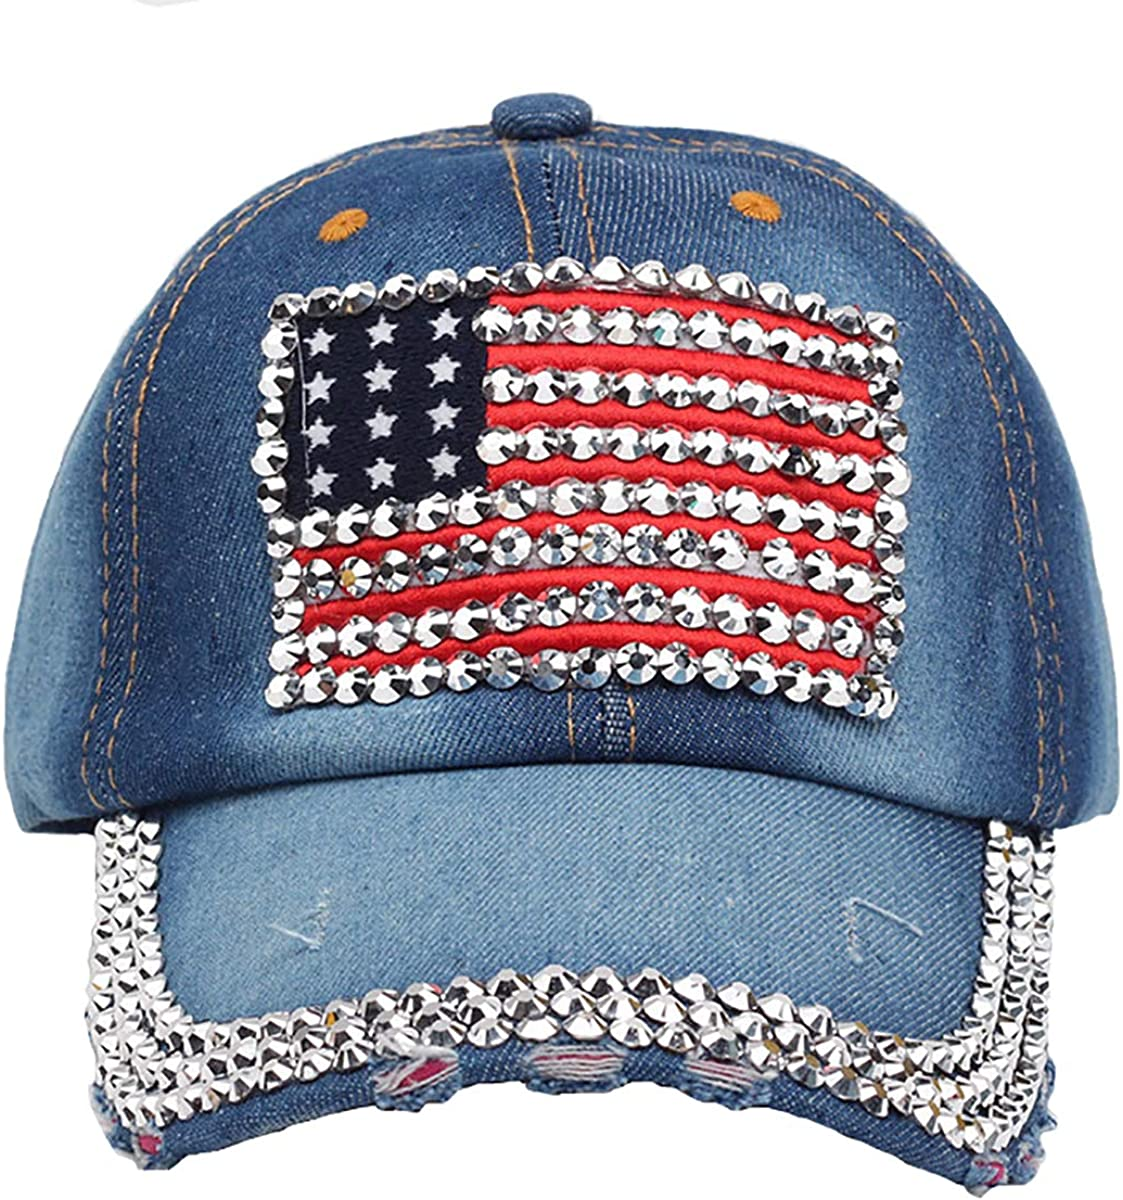 MissFun America Flag Sale item Baseball Cap Jewel Silver Special Campaign Jeans Bling Hats